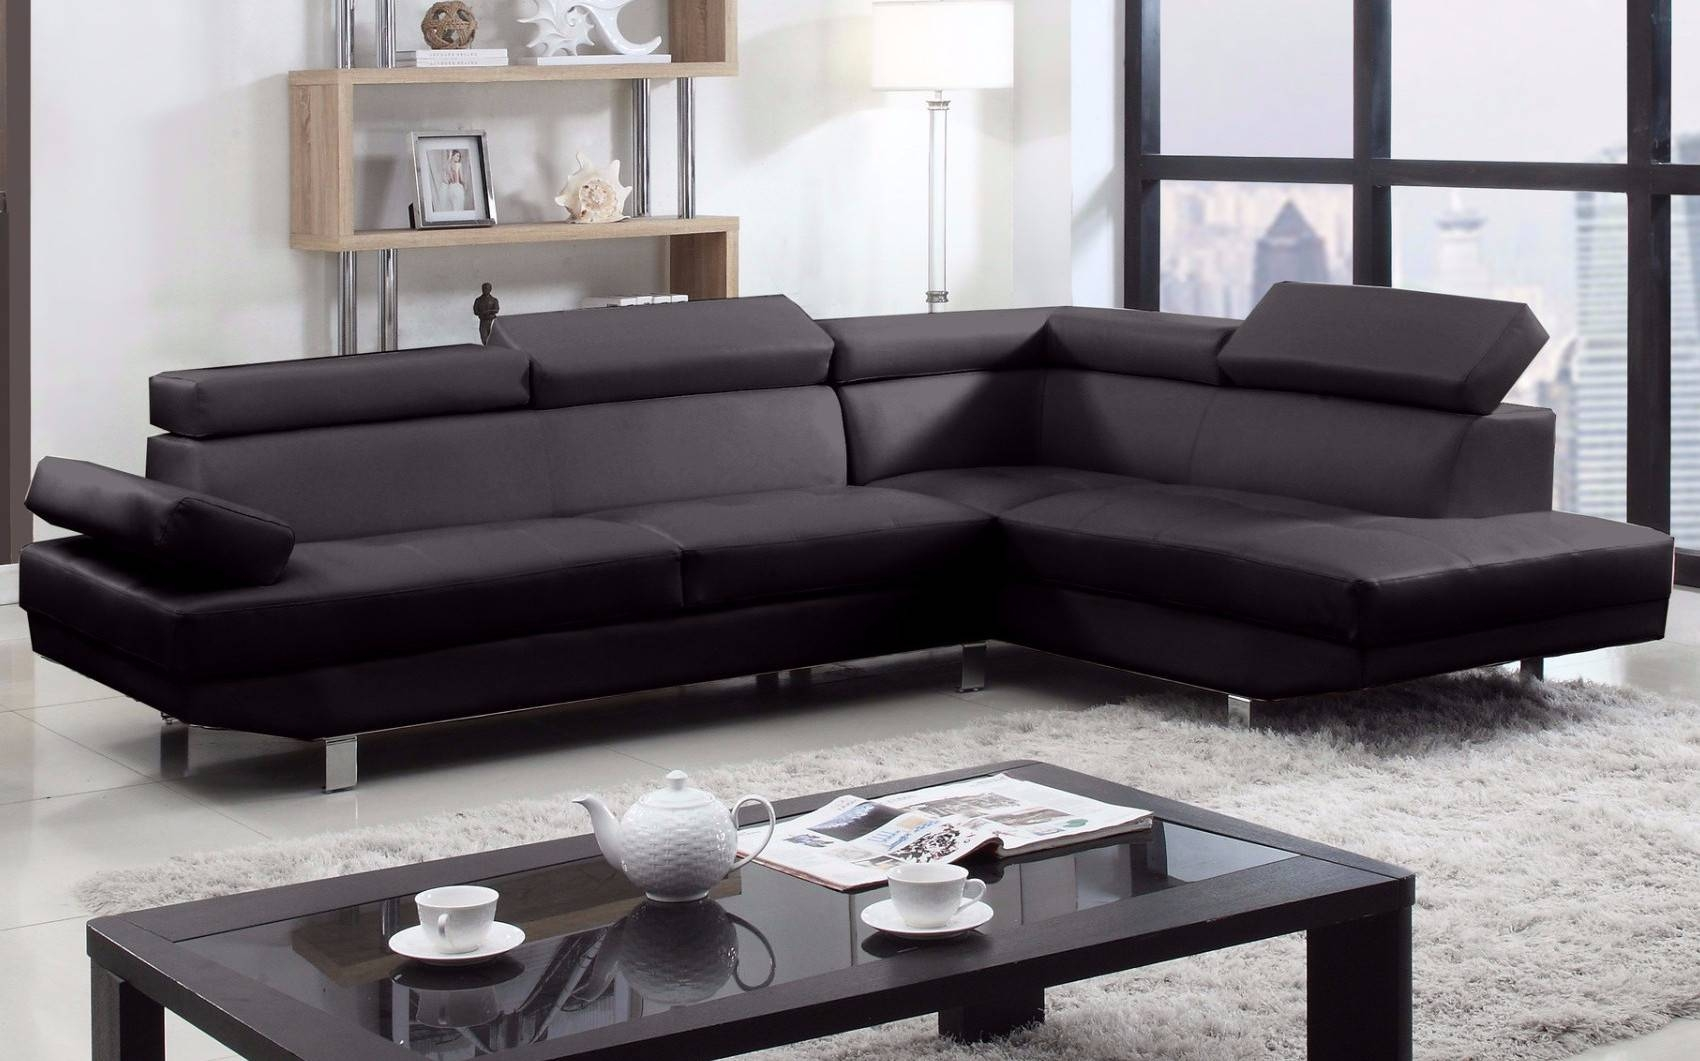 2 Piece Modern Bonded Leather Right Facing Chaise Sectional Sofa Pertaining To Sectional Sofa With 2 Chaises (View 2 of 30)